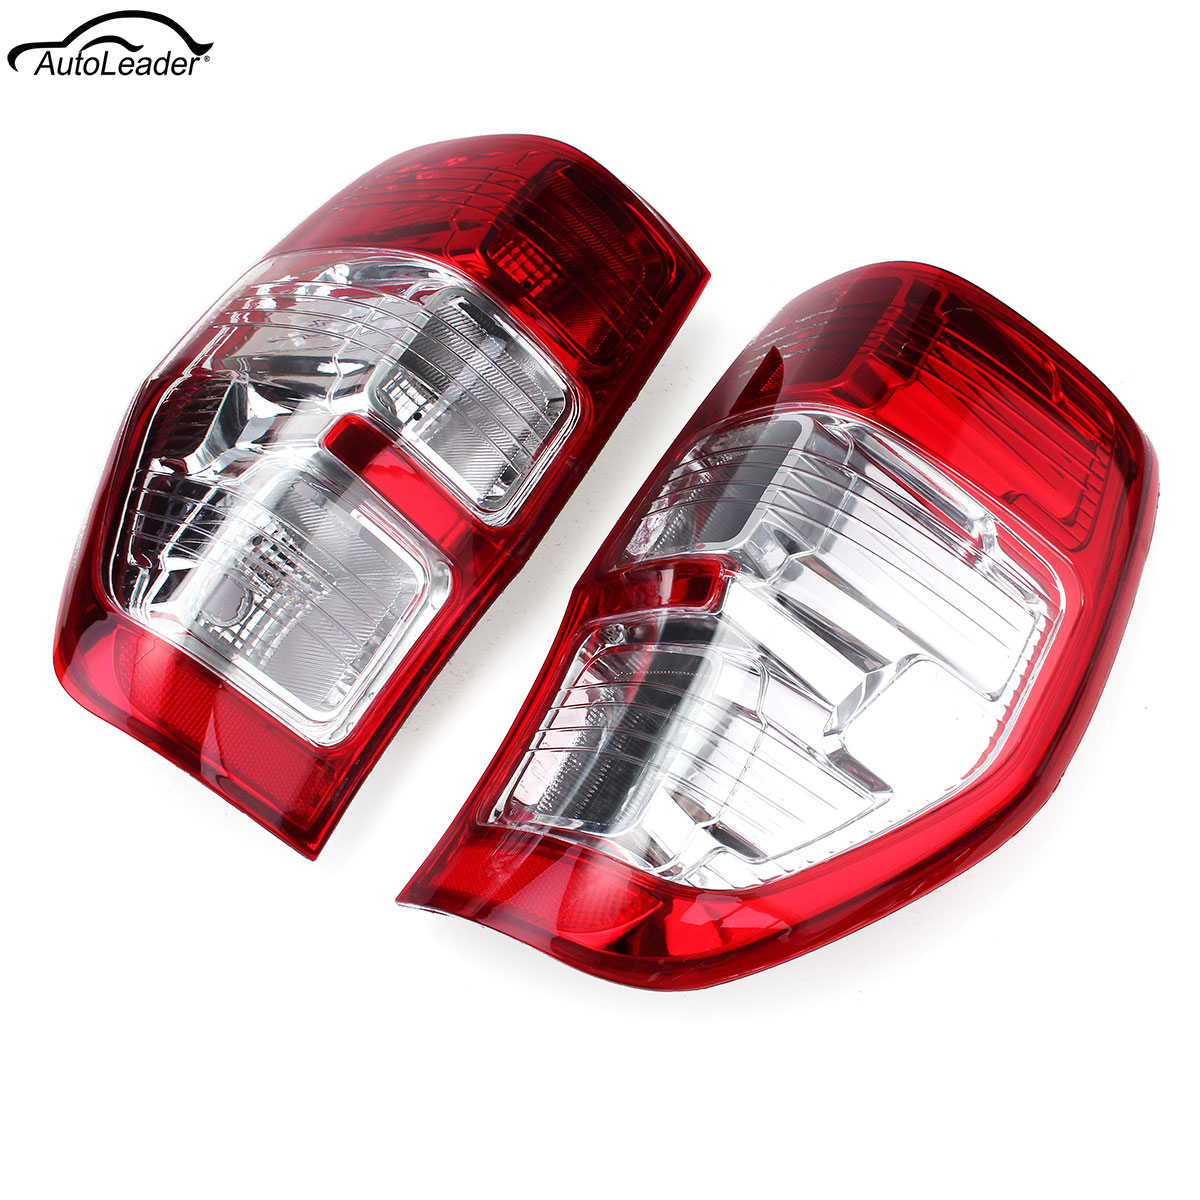 1Pc Left/Right Rear Tail Light Lamp for Ford Ranger Ute PX XL XLS XLT 2011 2012 2013 2014 2015 2016 2017 2018 2 pcs left and right tail light for chevy for malibu 2011 2014 led tail light led light